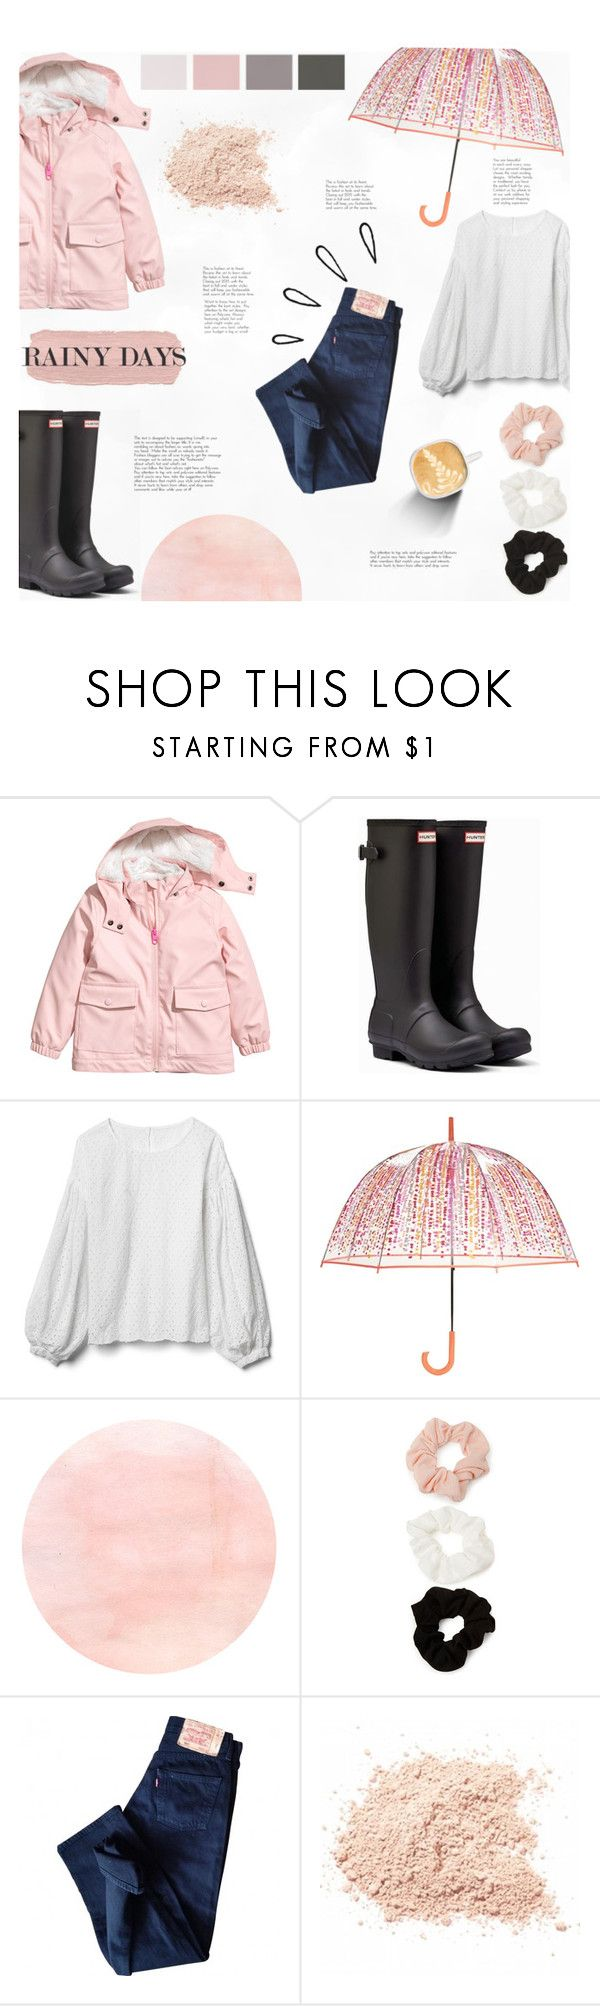 """Rainy Day Style"" by littledesigns ❤ liked on Polyvore featuring Hunter, Gap, Vera Bradley, Forever 21, Levi's, Old Navy and fashionset"